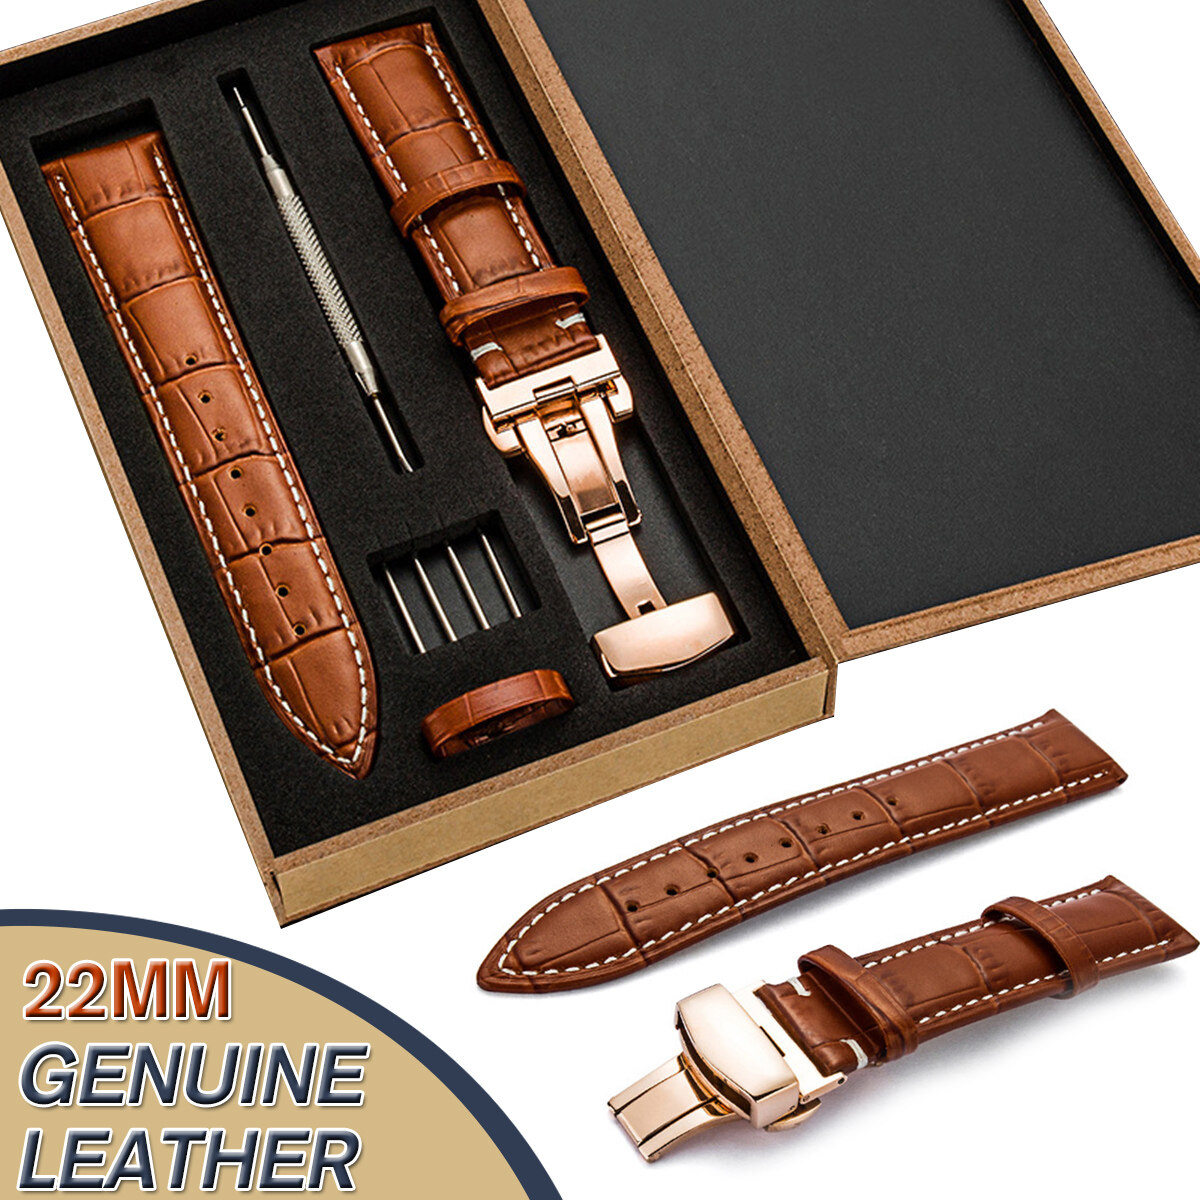 22MM Genuine Leather Watch Band Strap Kit Butterfly Buckle Deployment Clasp Gift for Men and Women Malaysia